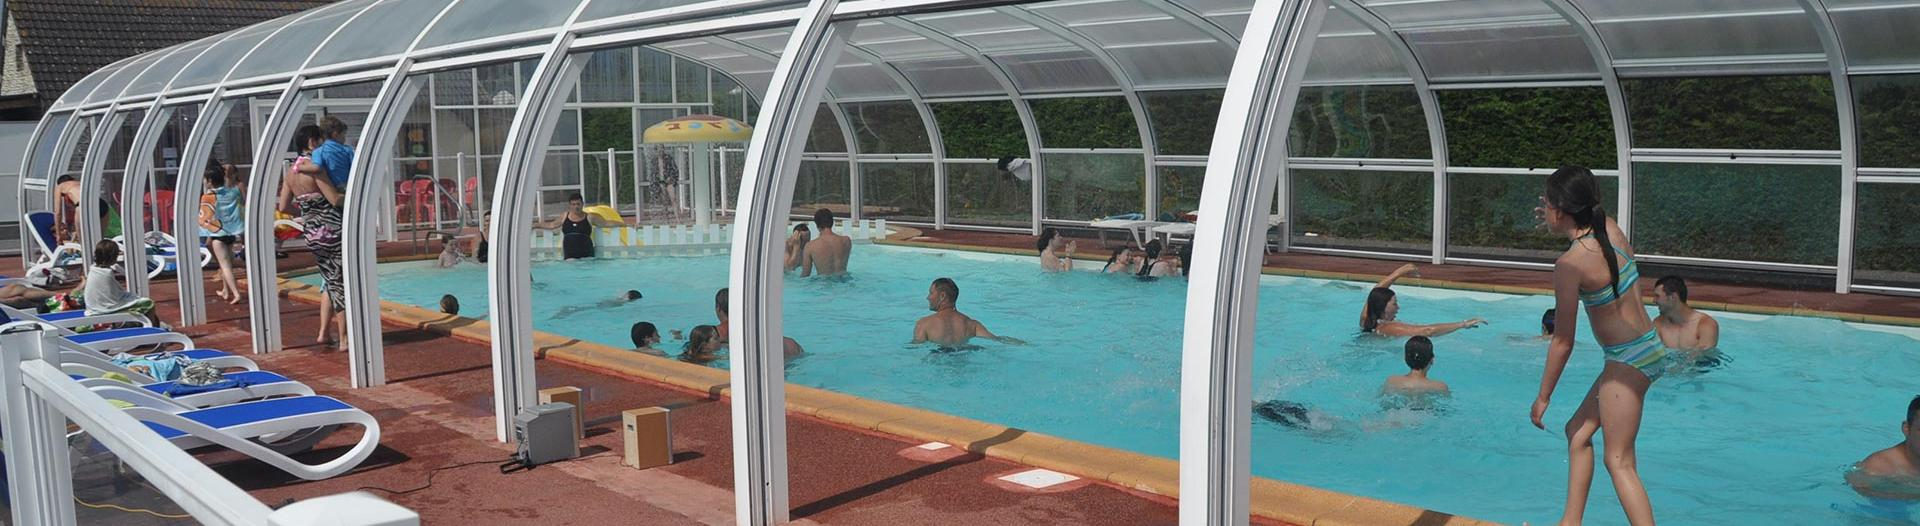 slider-camping-golf-barneville-piscine-couverte